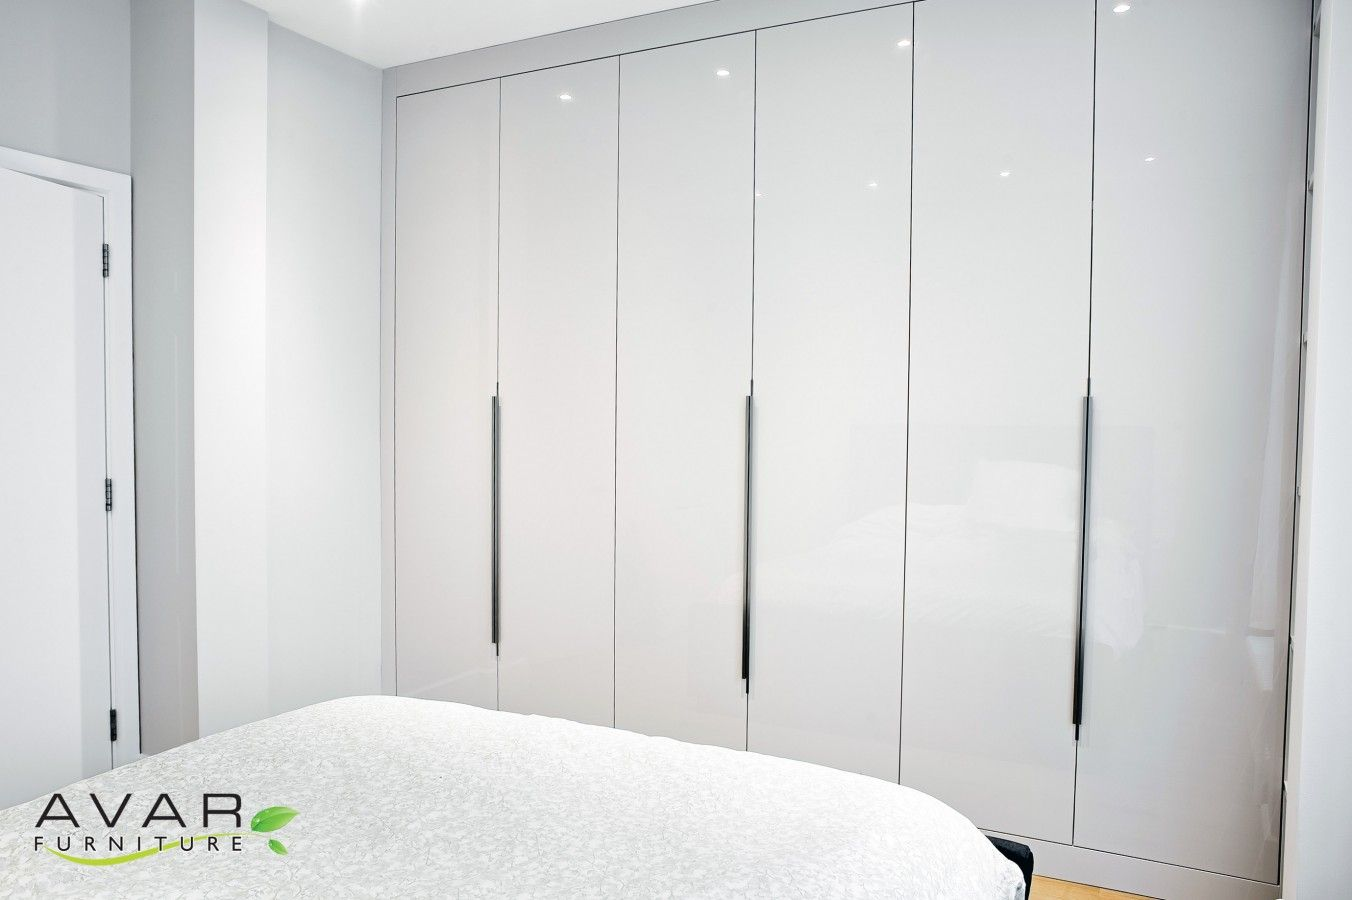 High Gloss Wardrobe From Avar Furniture Fitted Bedroom Furniture White Gloss Furniture Dressing Room Design